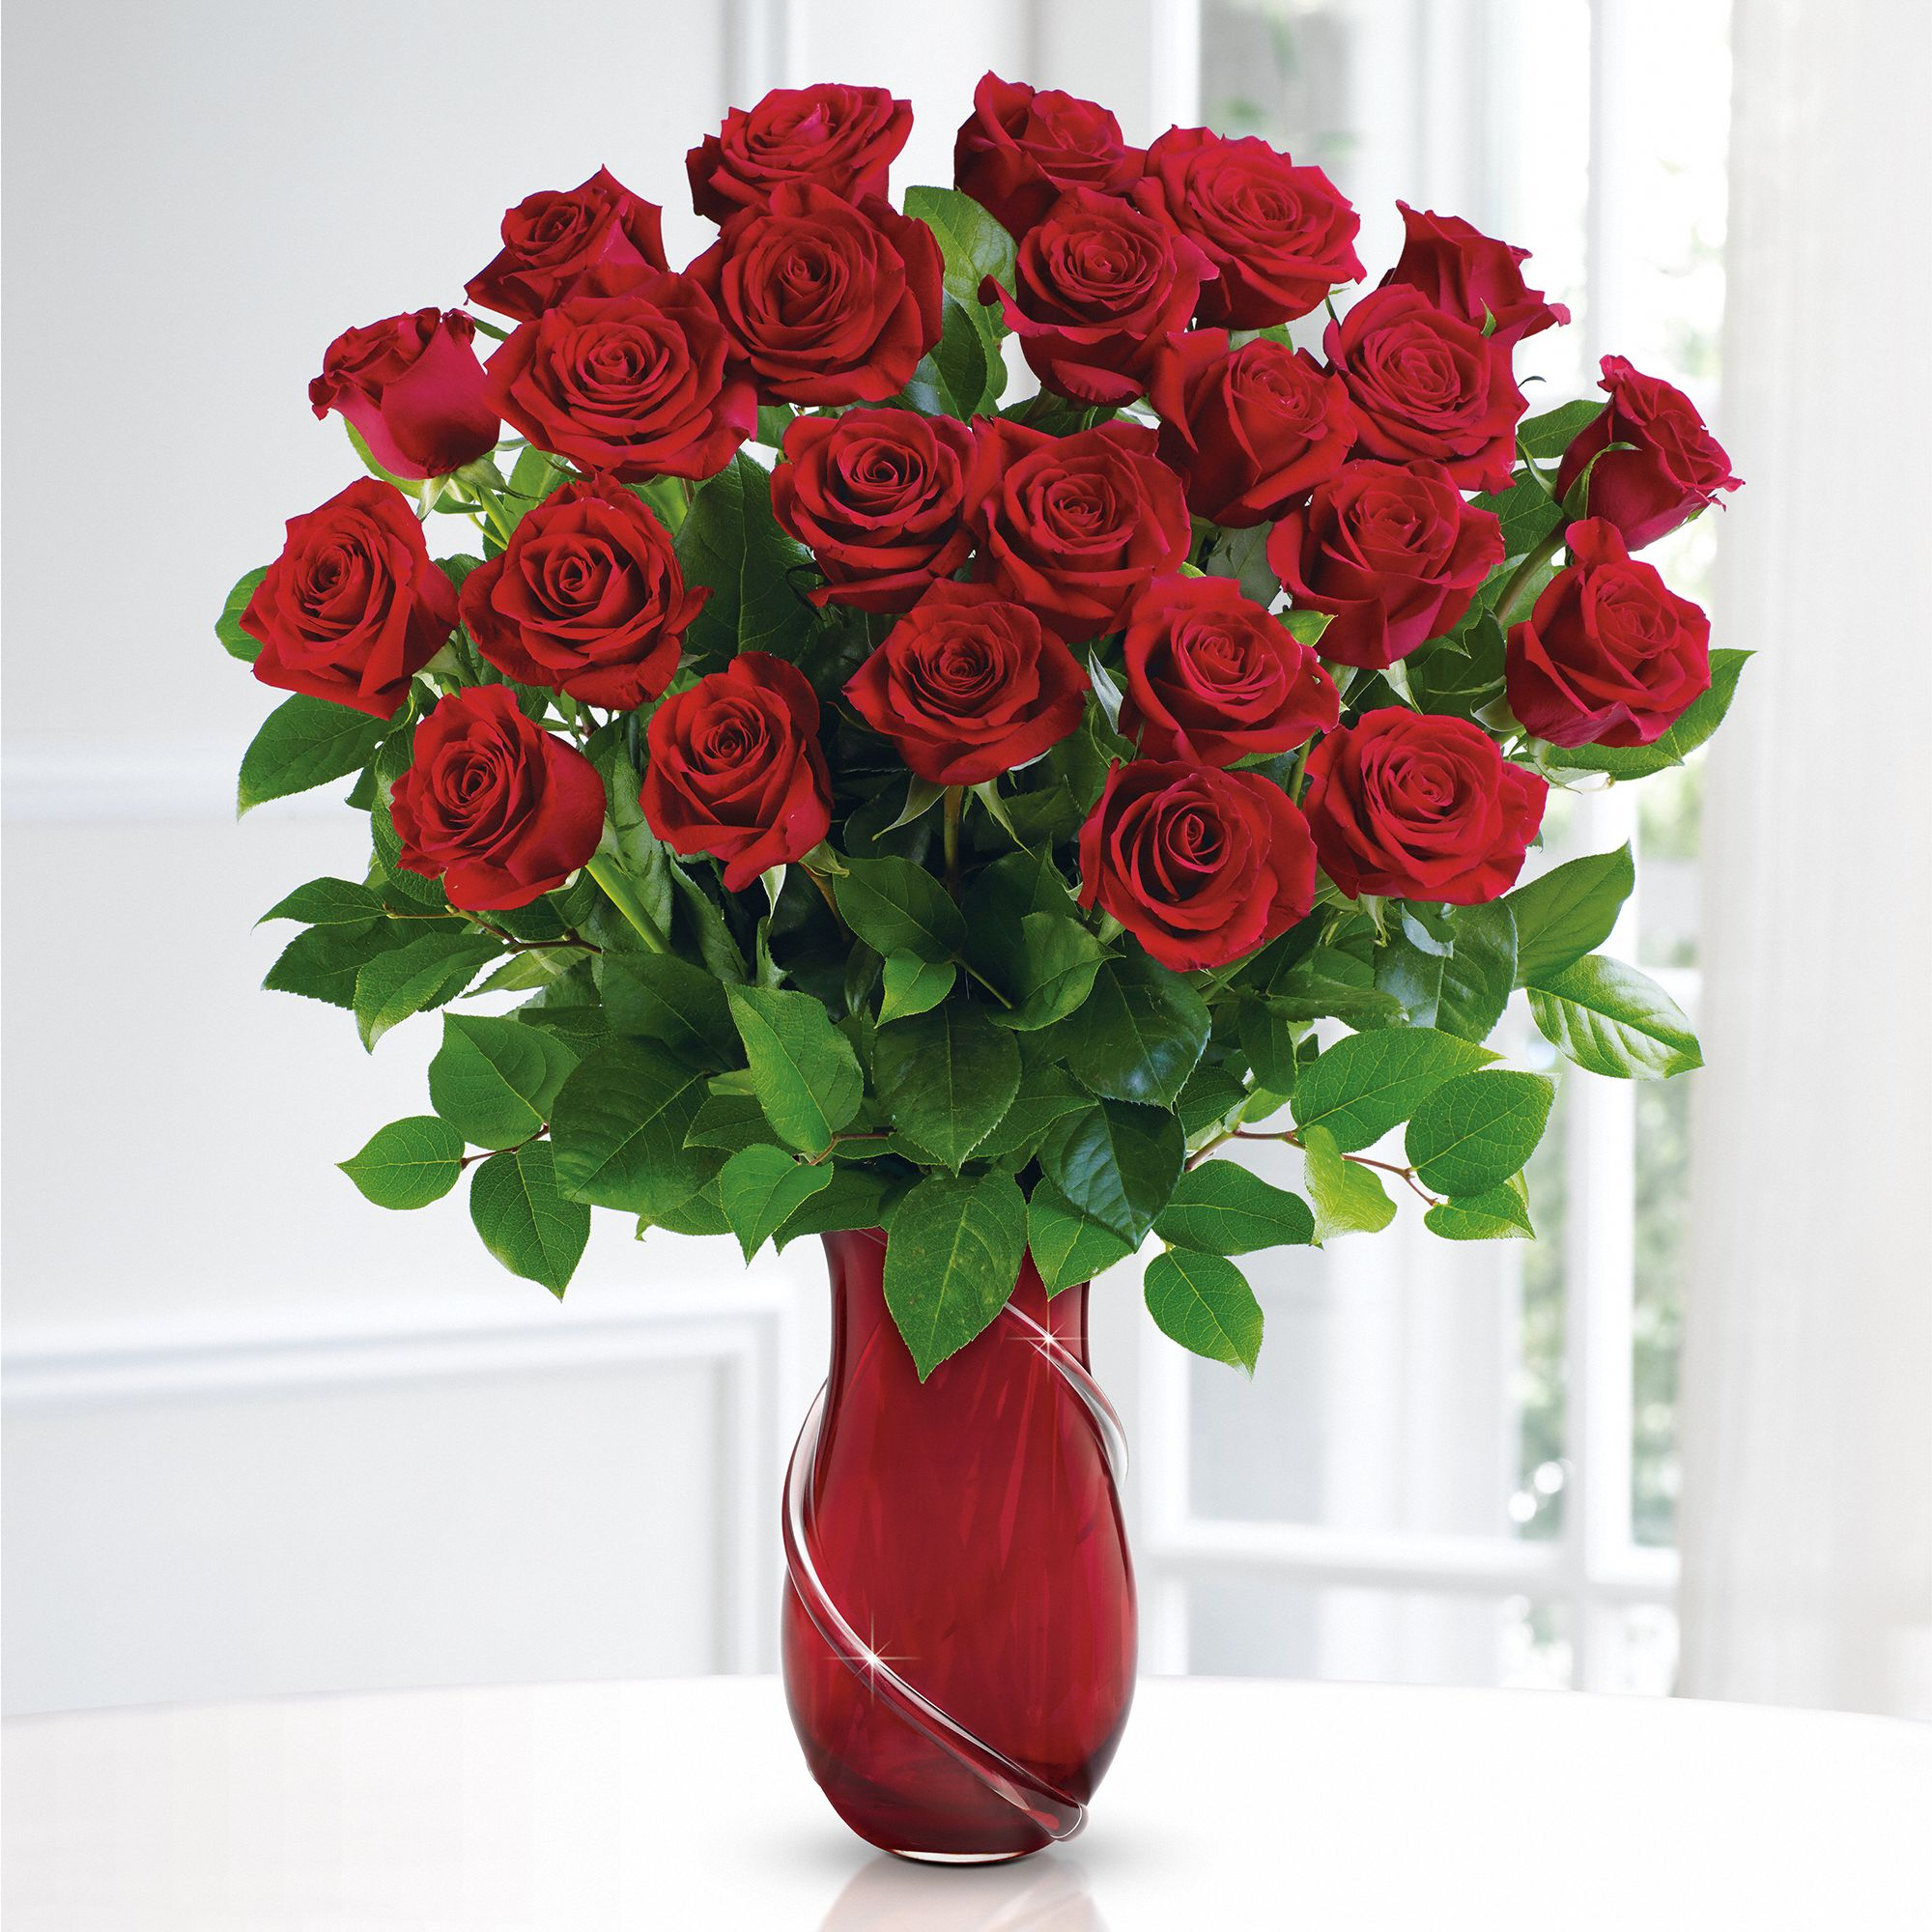 5 most popular flowers to give on valentine's day | teleflora blog, Ideas